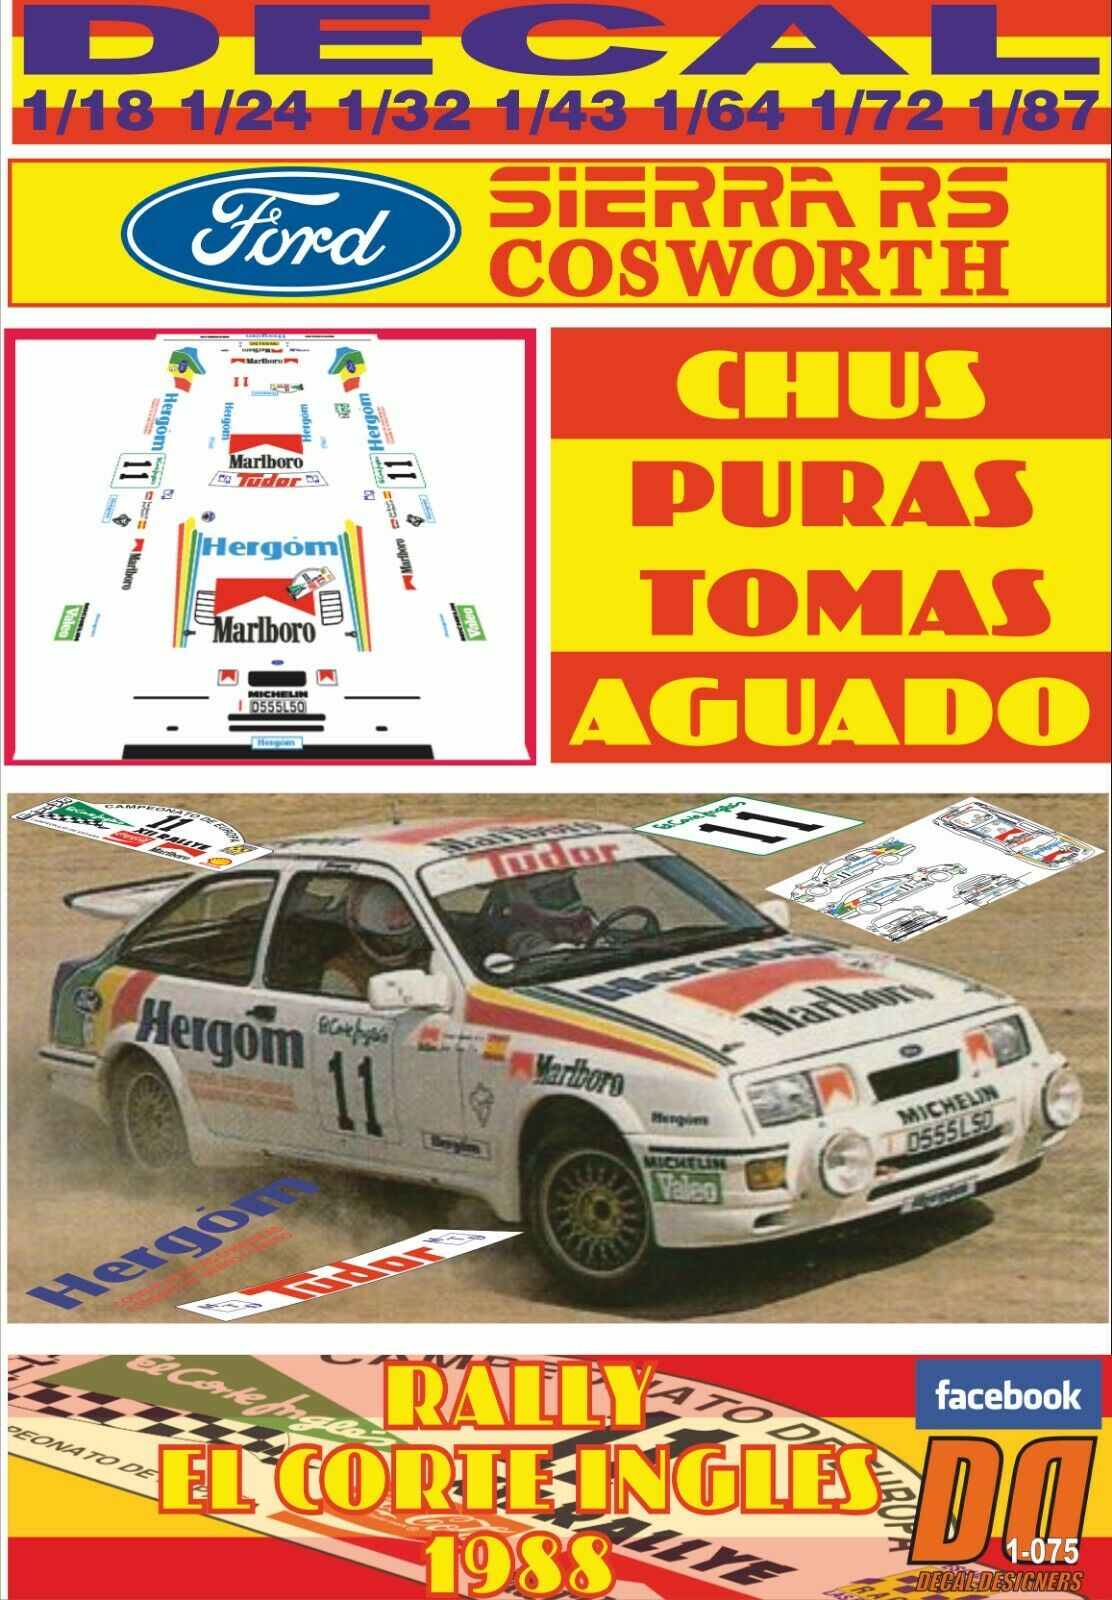 DECAL FORD SIERRA COSTworth CHUS SYRKE rally EL CORTE INGELS 1988